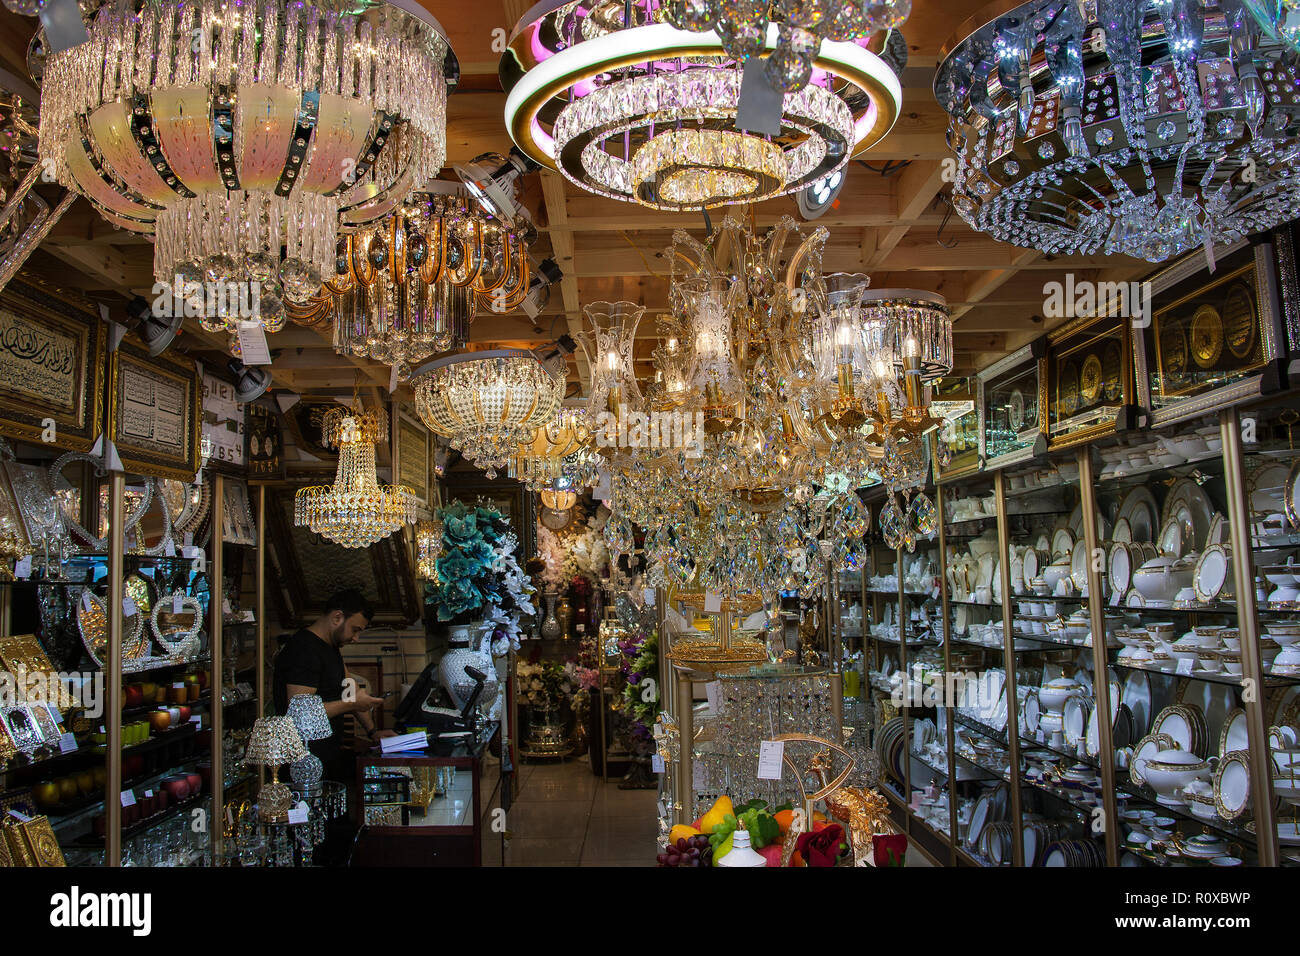 domestic crockery and lamp and decorative lighting shop, southall broadway - Stock Image